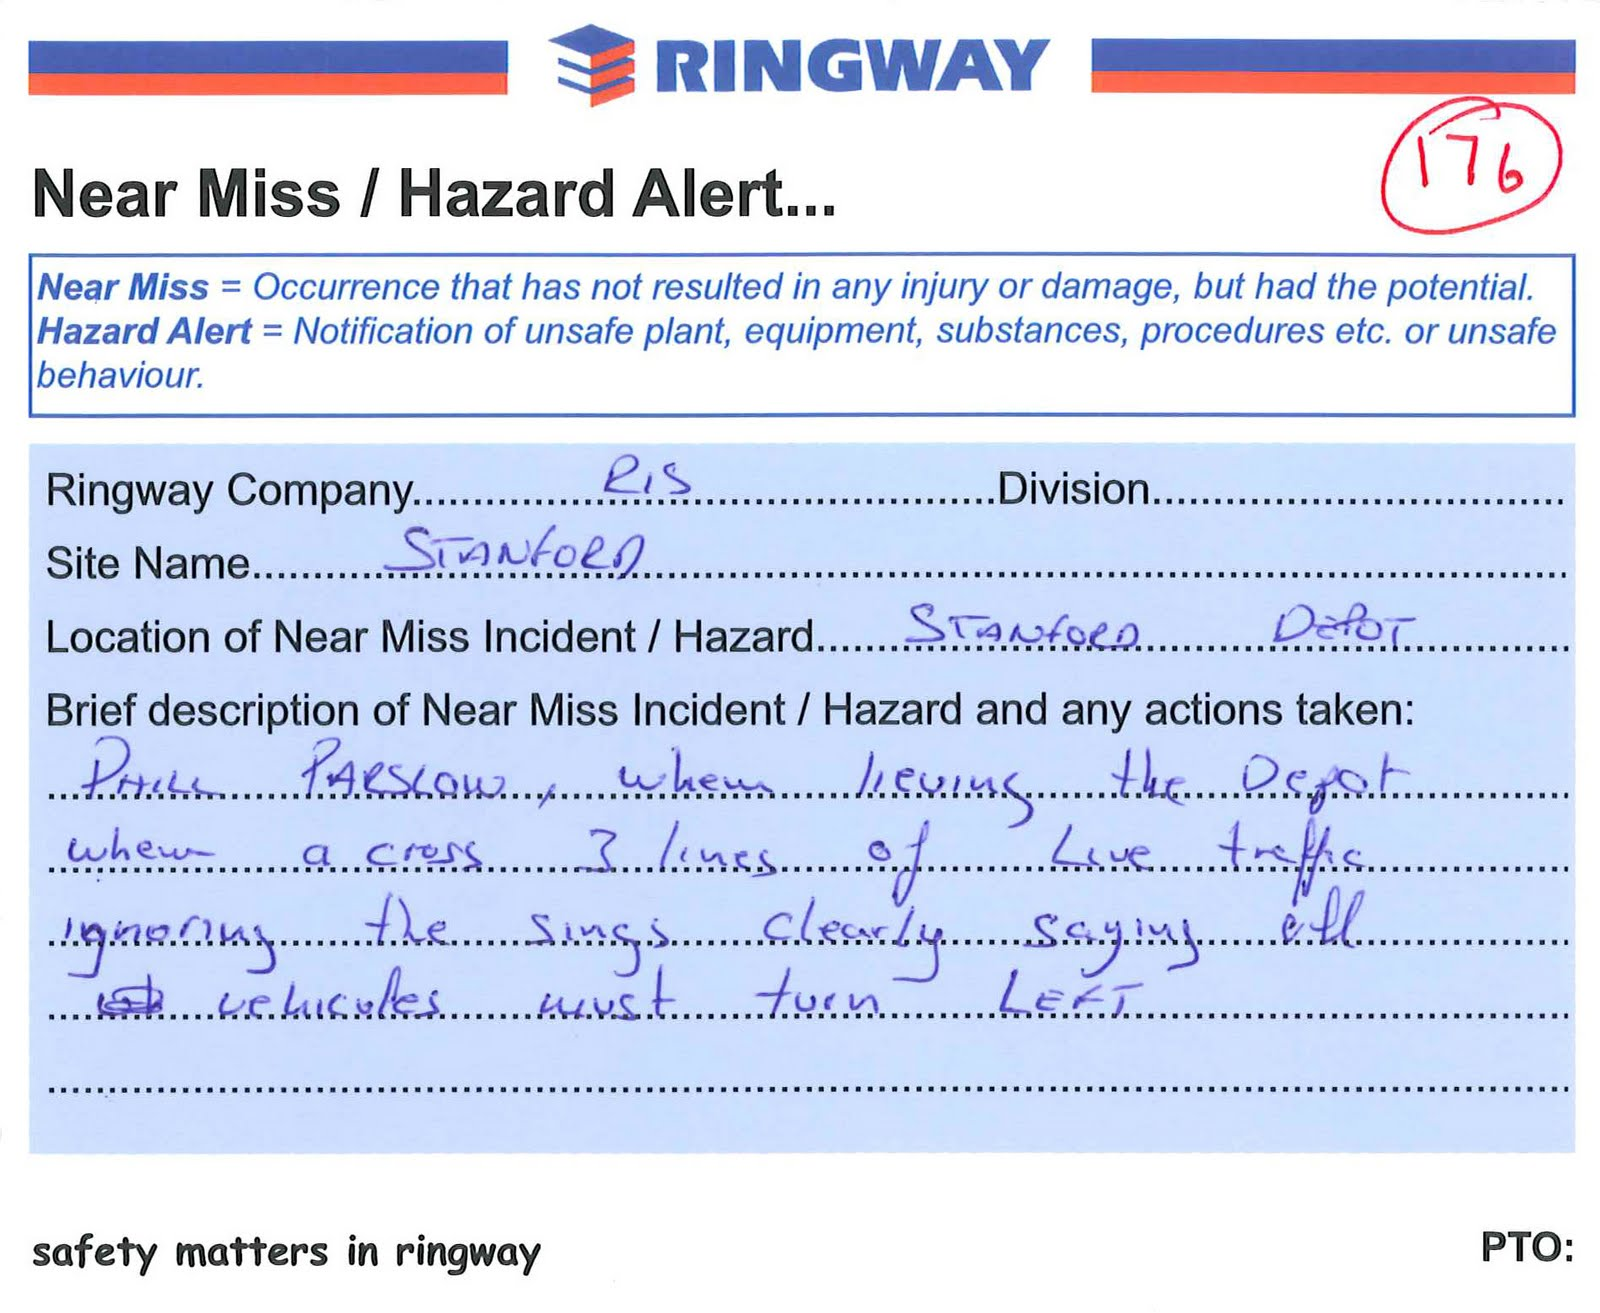 Near Miss Template example near miss report pictures home images – Injury Incident Report Form Template